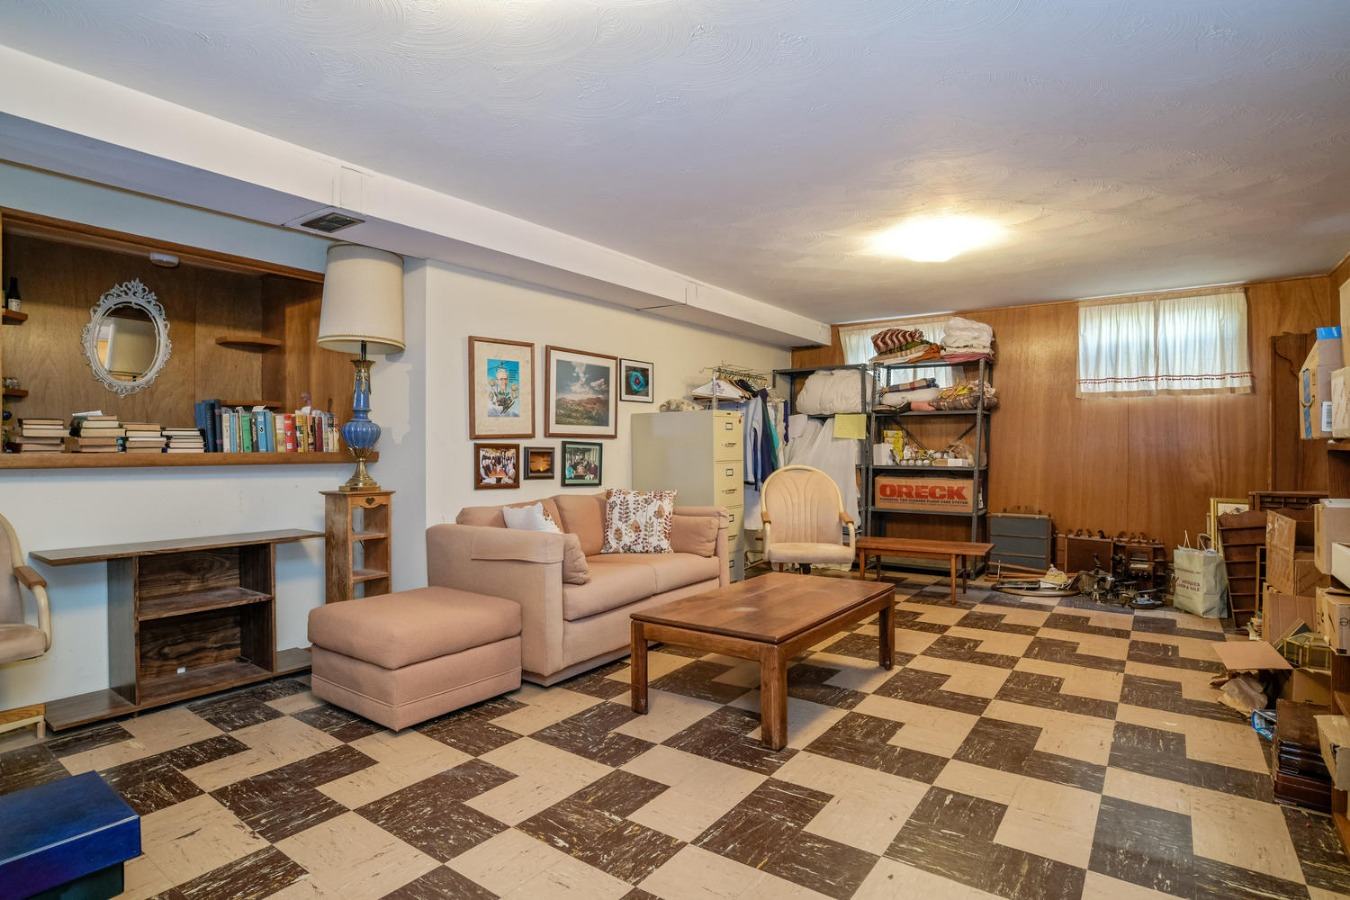 Spacious Retro 60's Family Room in Basement